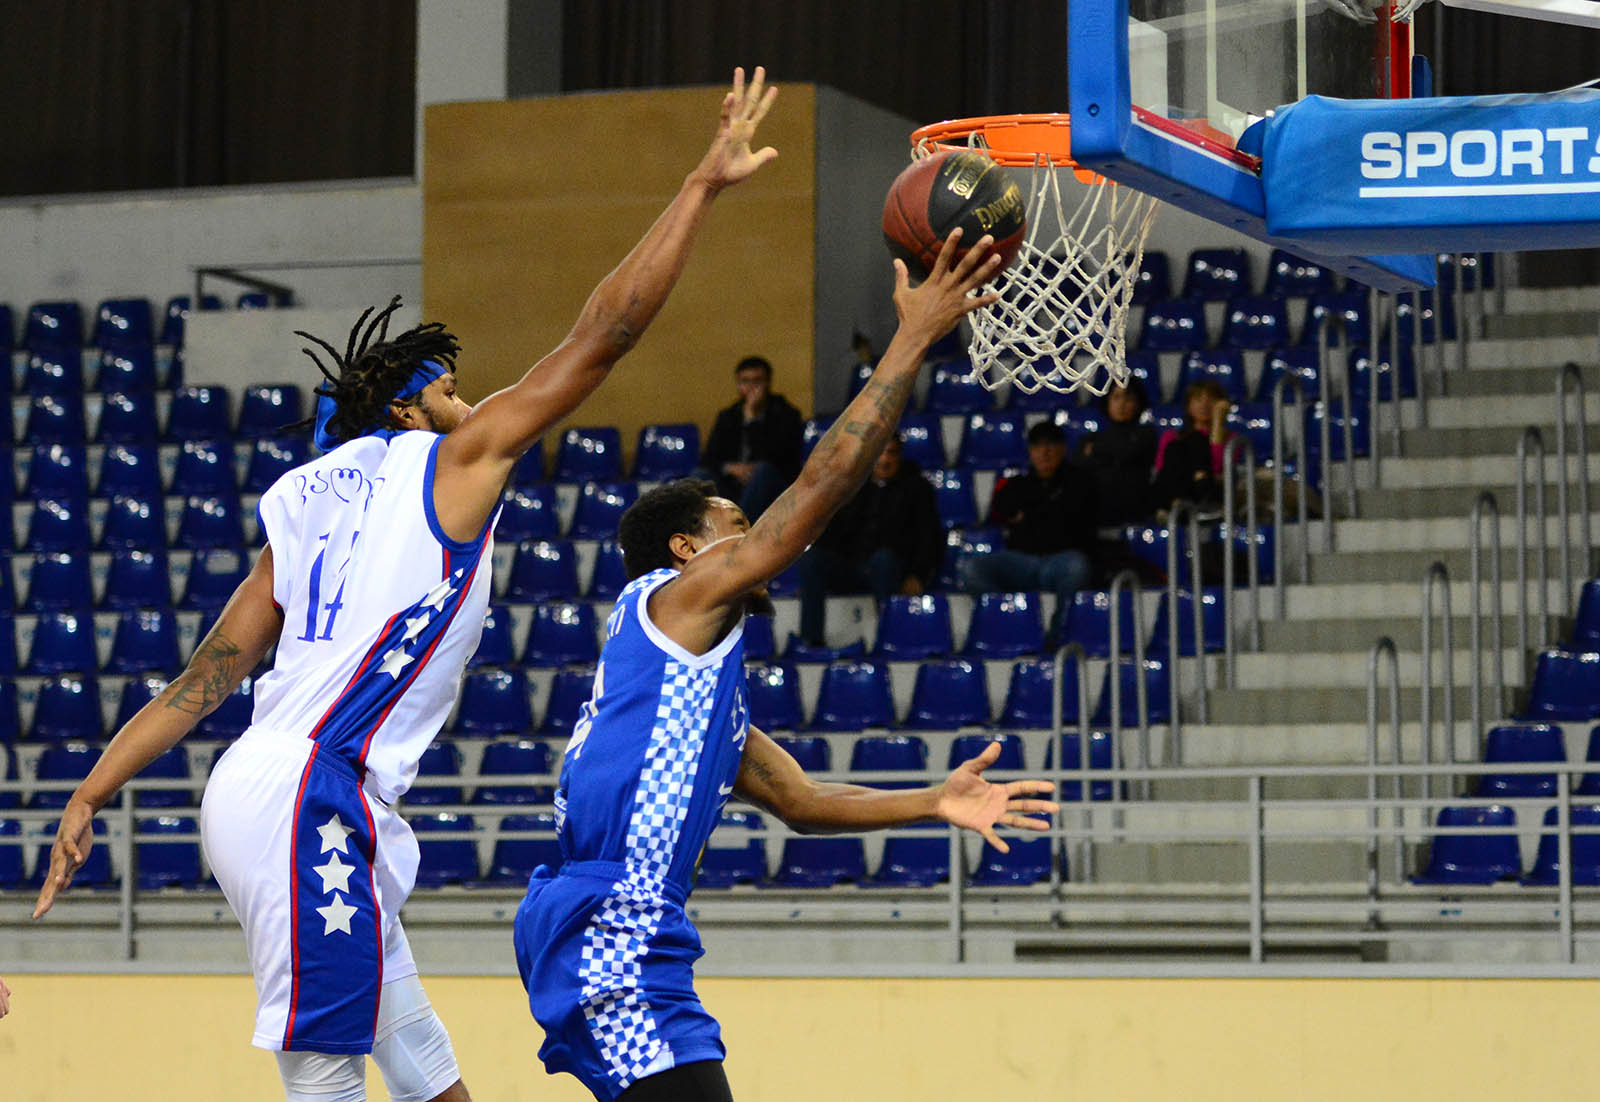 Batumi defeated Titebi convincingly – 87:67